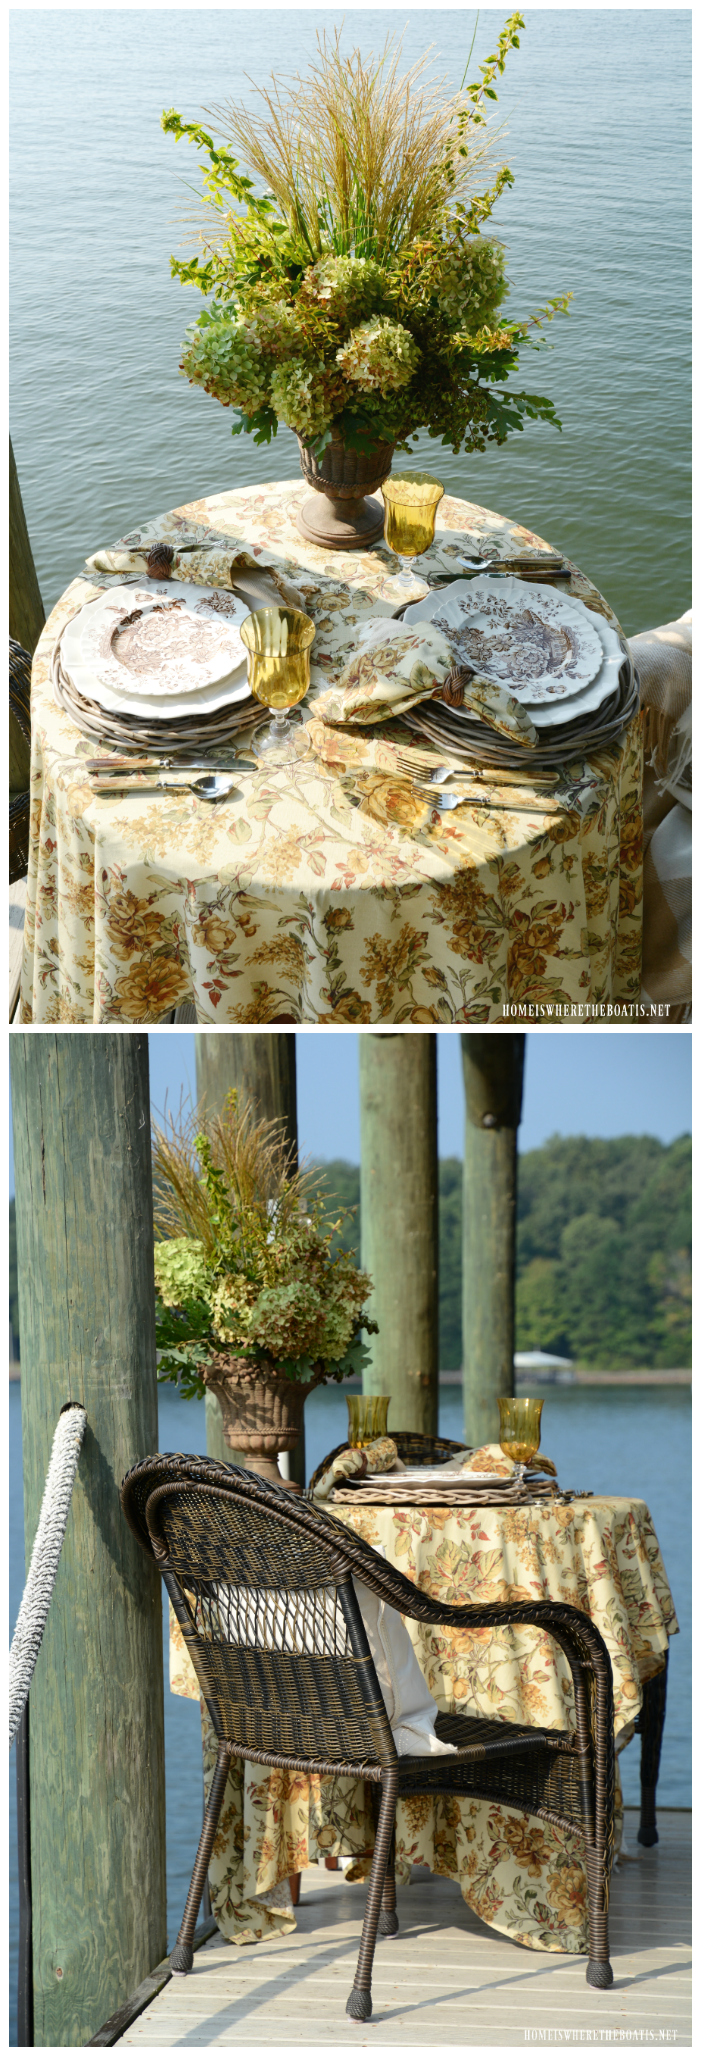 Dockside table and early fall flower arrangement | ©homeiswheretheboatis.net #fall #flowers #tablescapes #lake